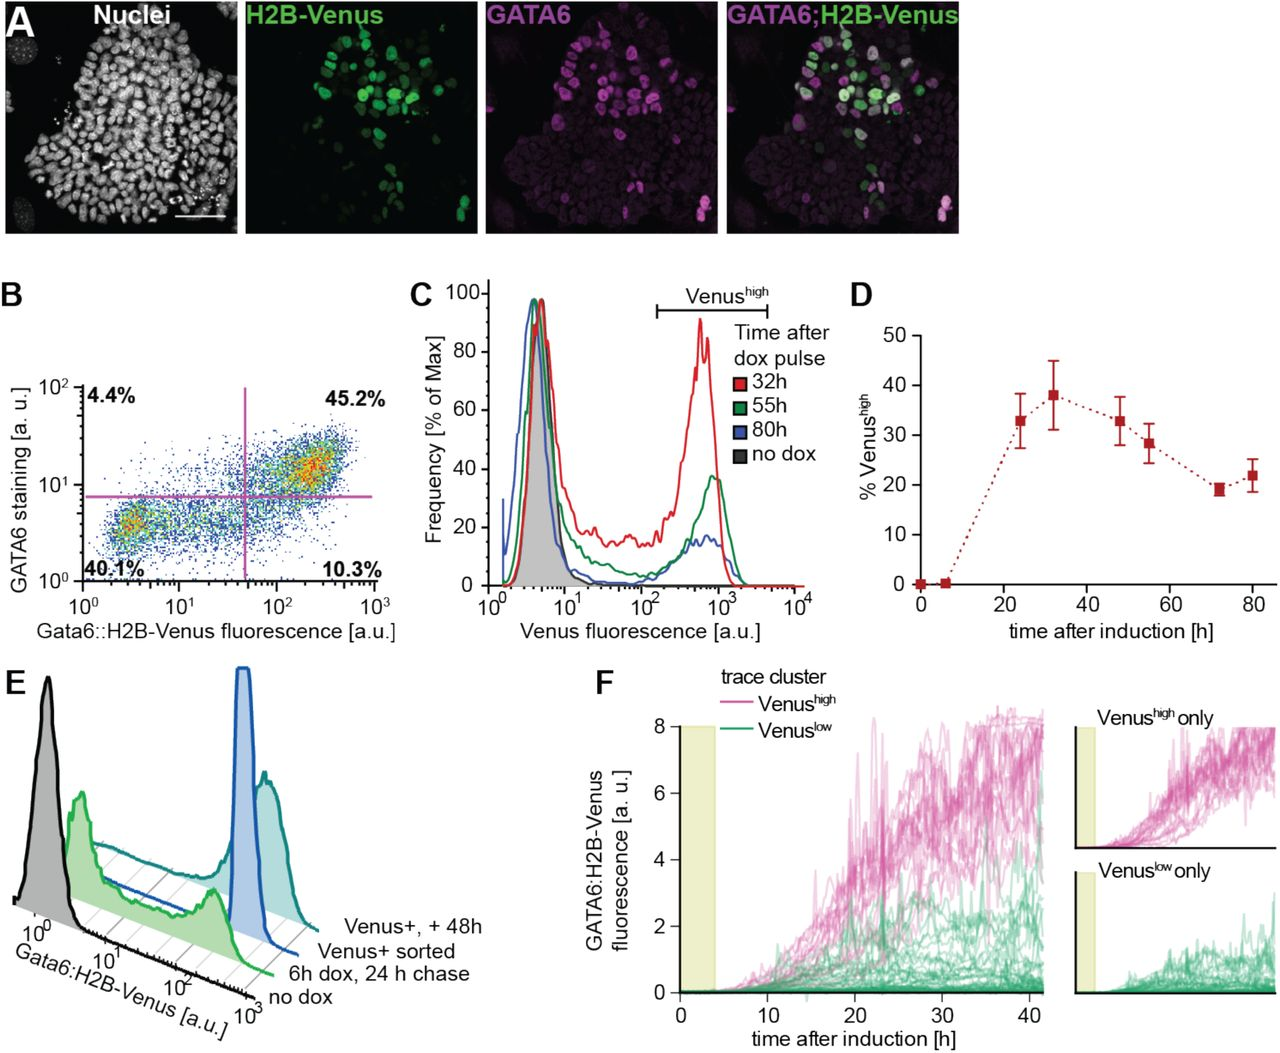 FGF/MAPK signaling sets the switching threshold of a bistable